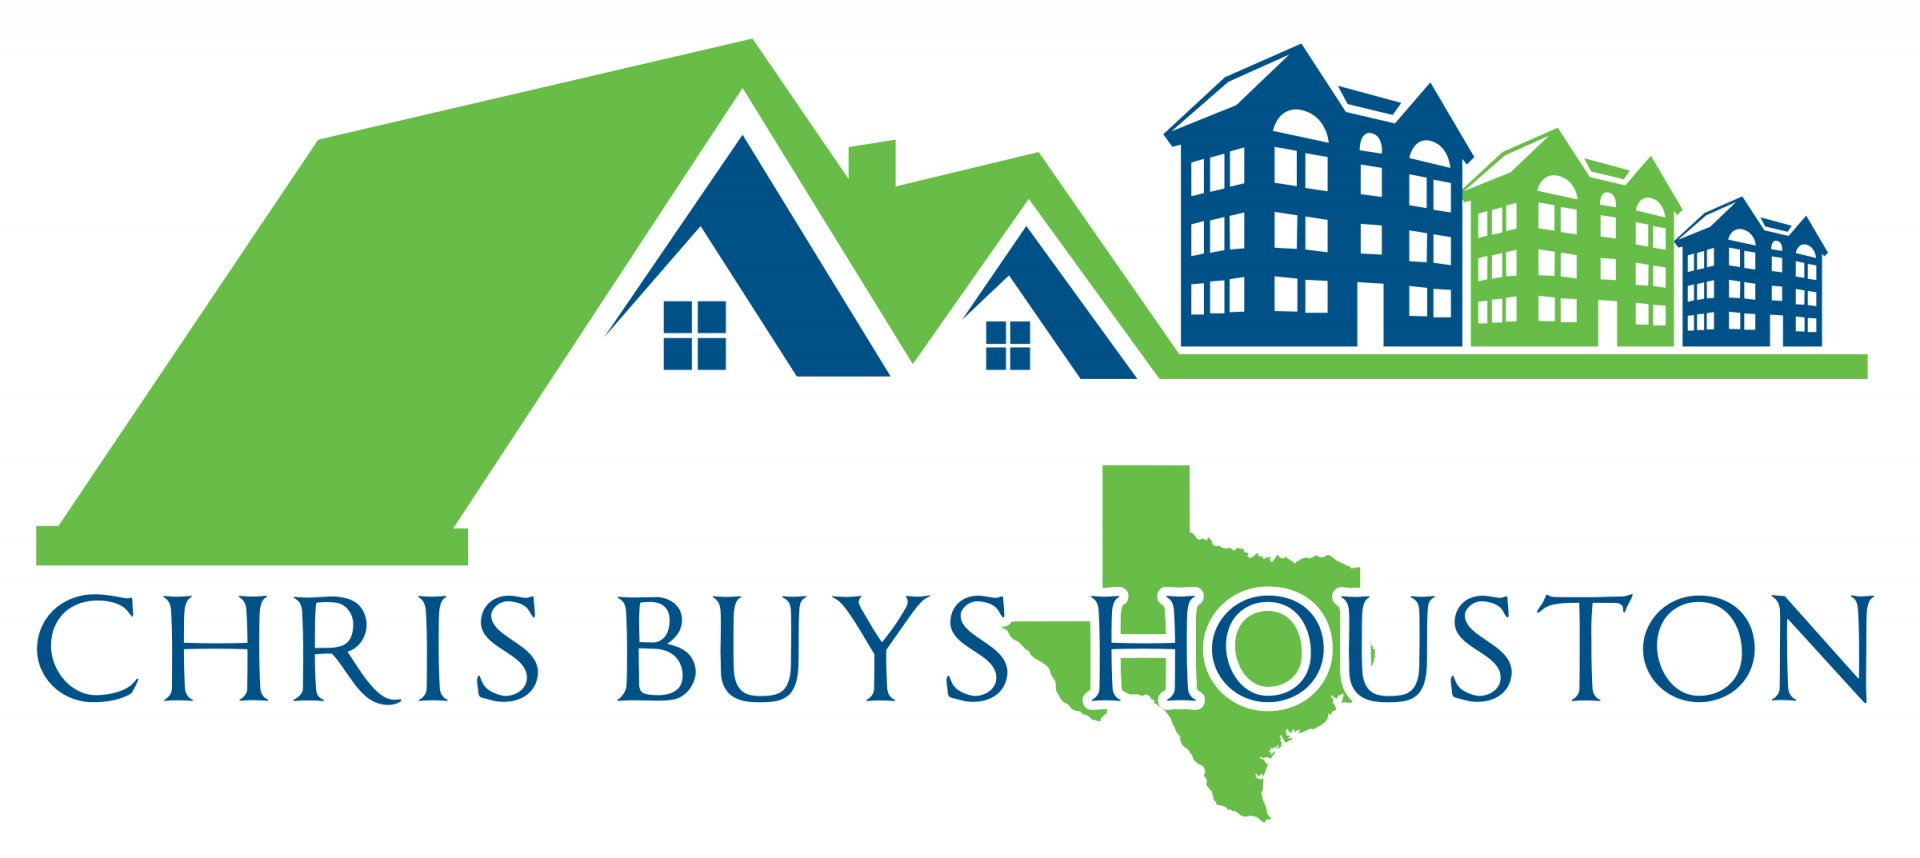 We Buy Houses Houston | Sell My House Fast Houston logo